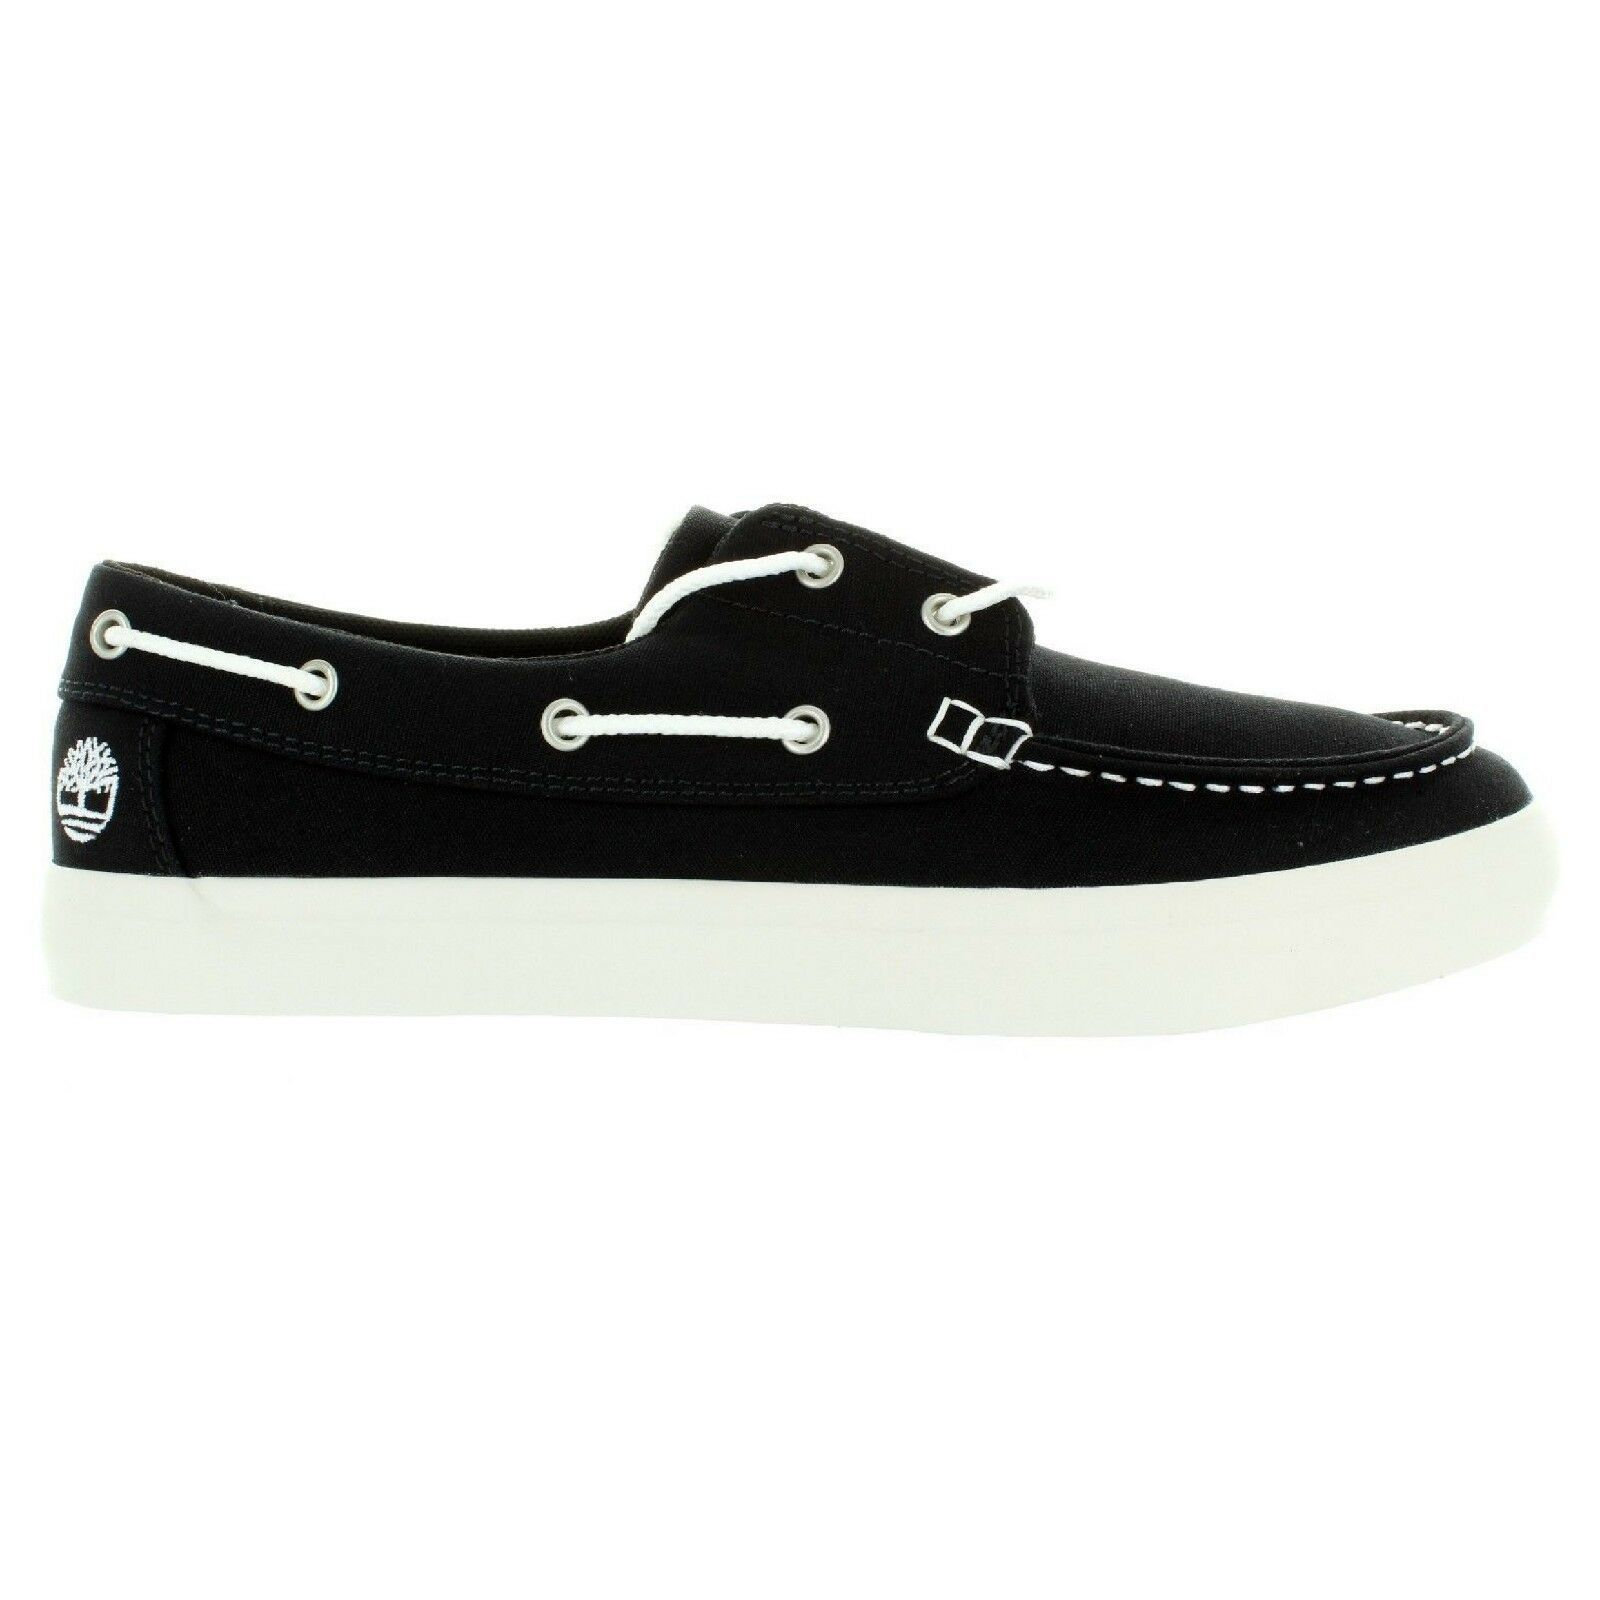 Primary image for TB0A1Q9F, TIMBERLAND MEN'S Union Wharf 2-Eye Boat Shoe Black